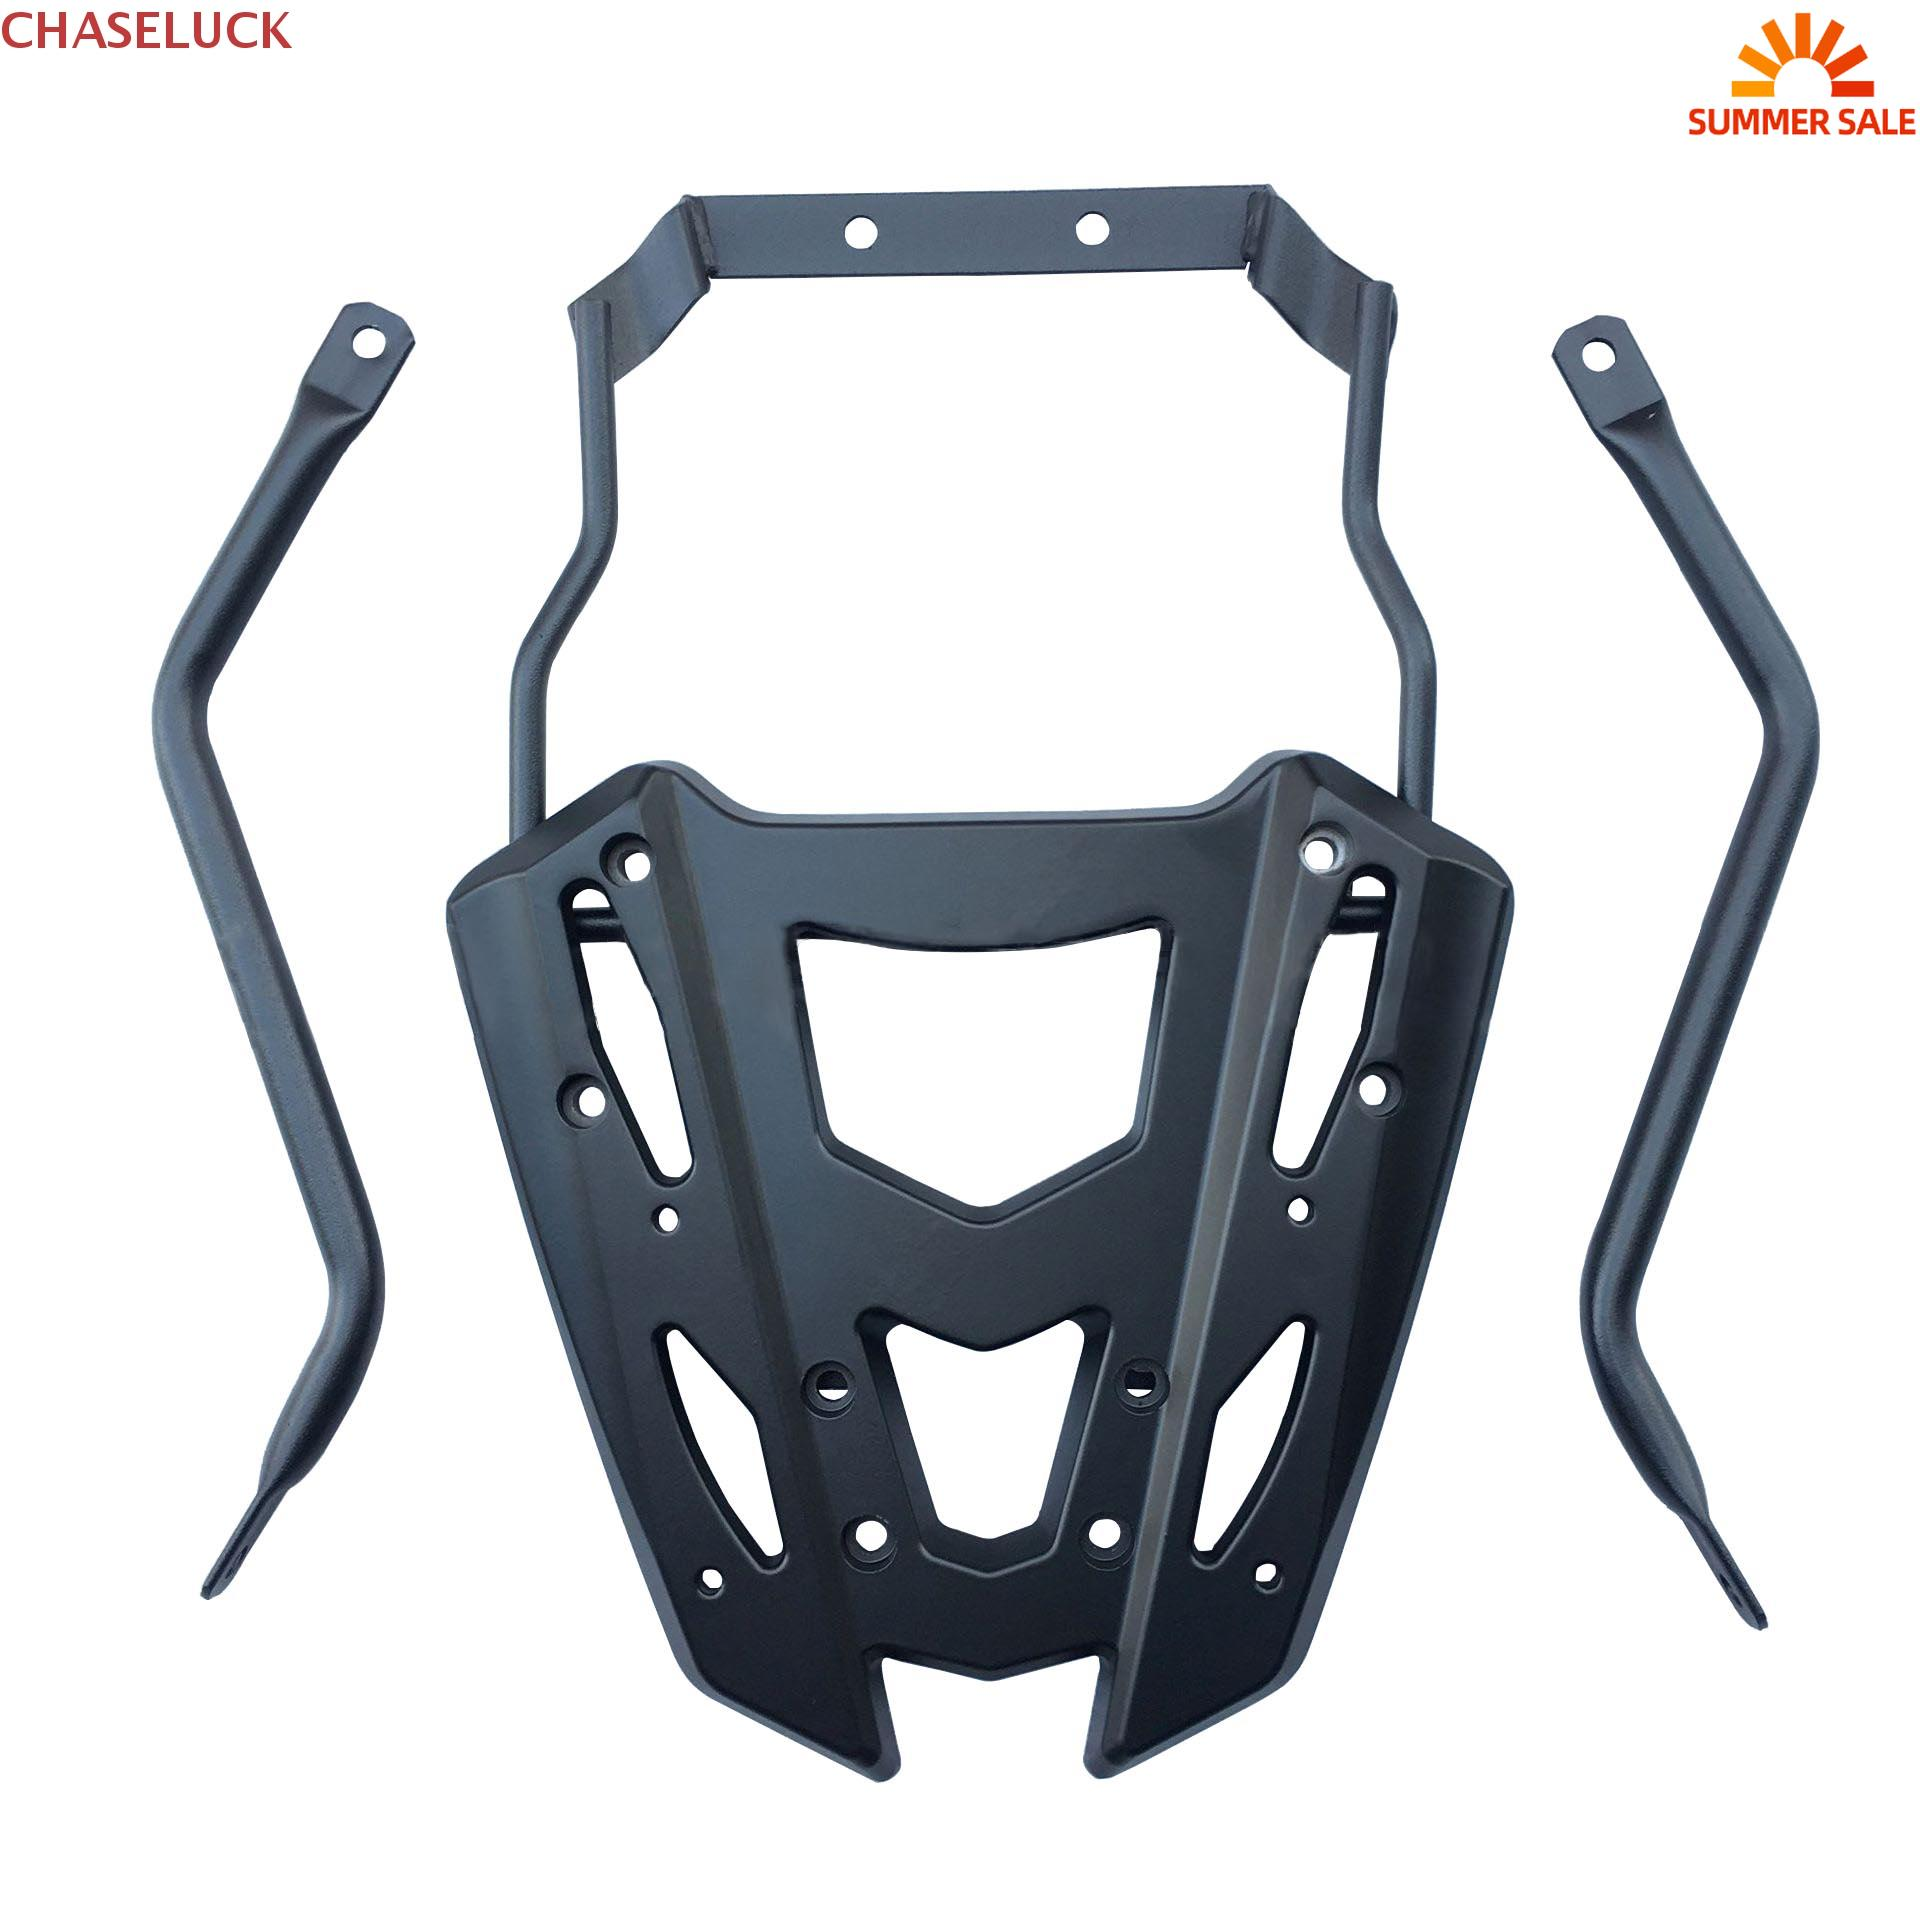 For Yamaha Aerox155 NVX155 <font><b>NVX</b></font> <font><b>Aerox</b></font> <font><b>155</b></font> Rear Top Tail Luggage Trunk Rack Cargo Holder Tool Box Bracket Tailstock Hand Bar Grab image